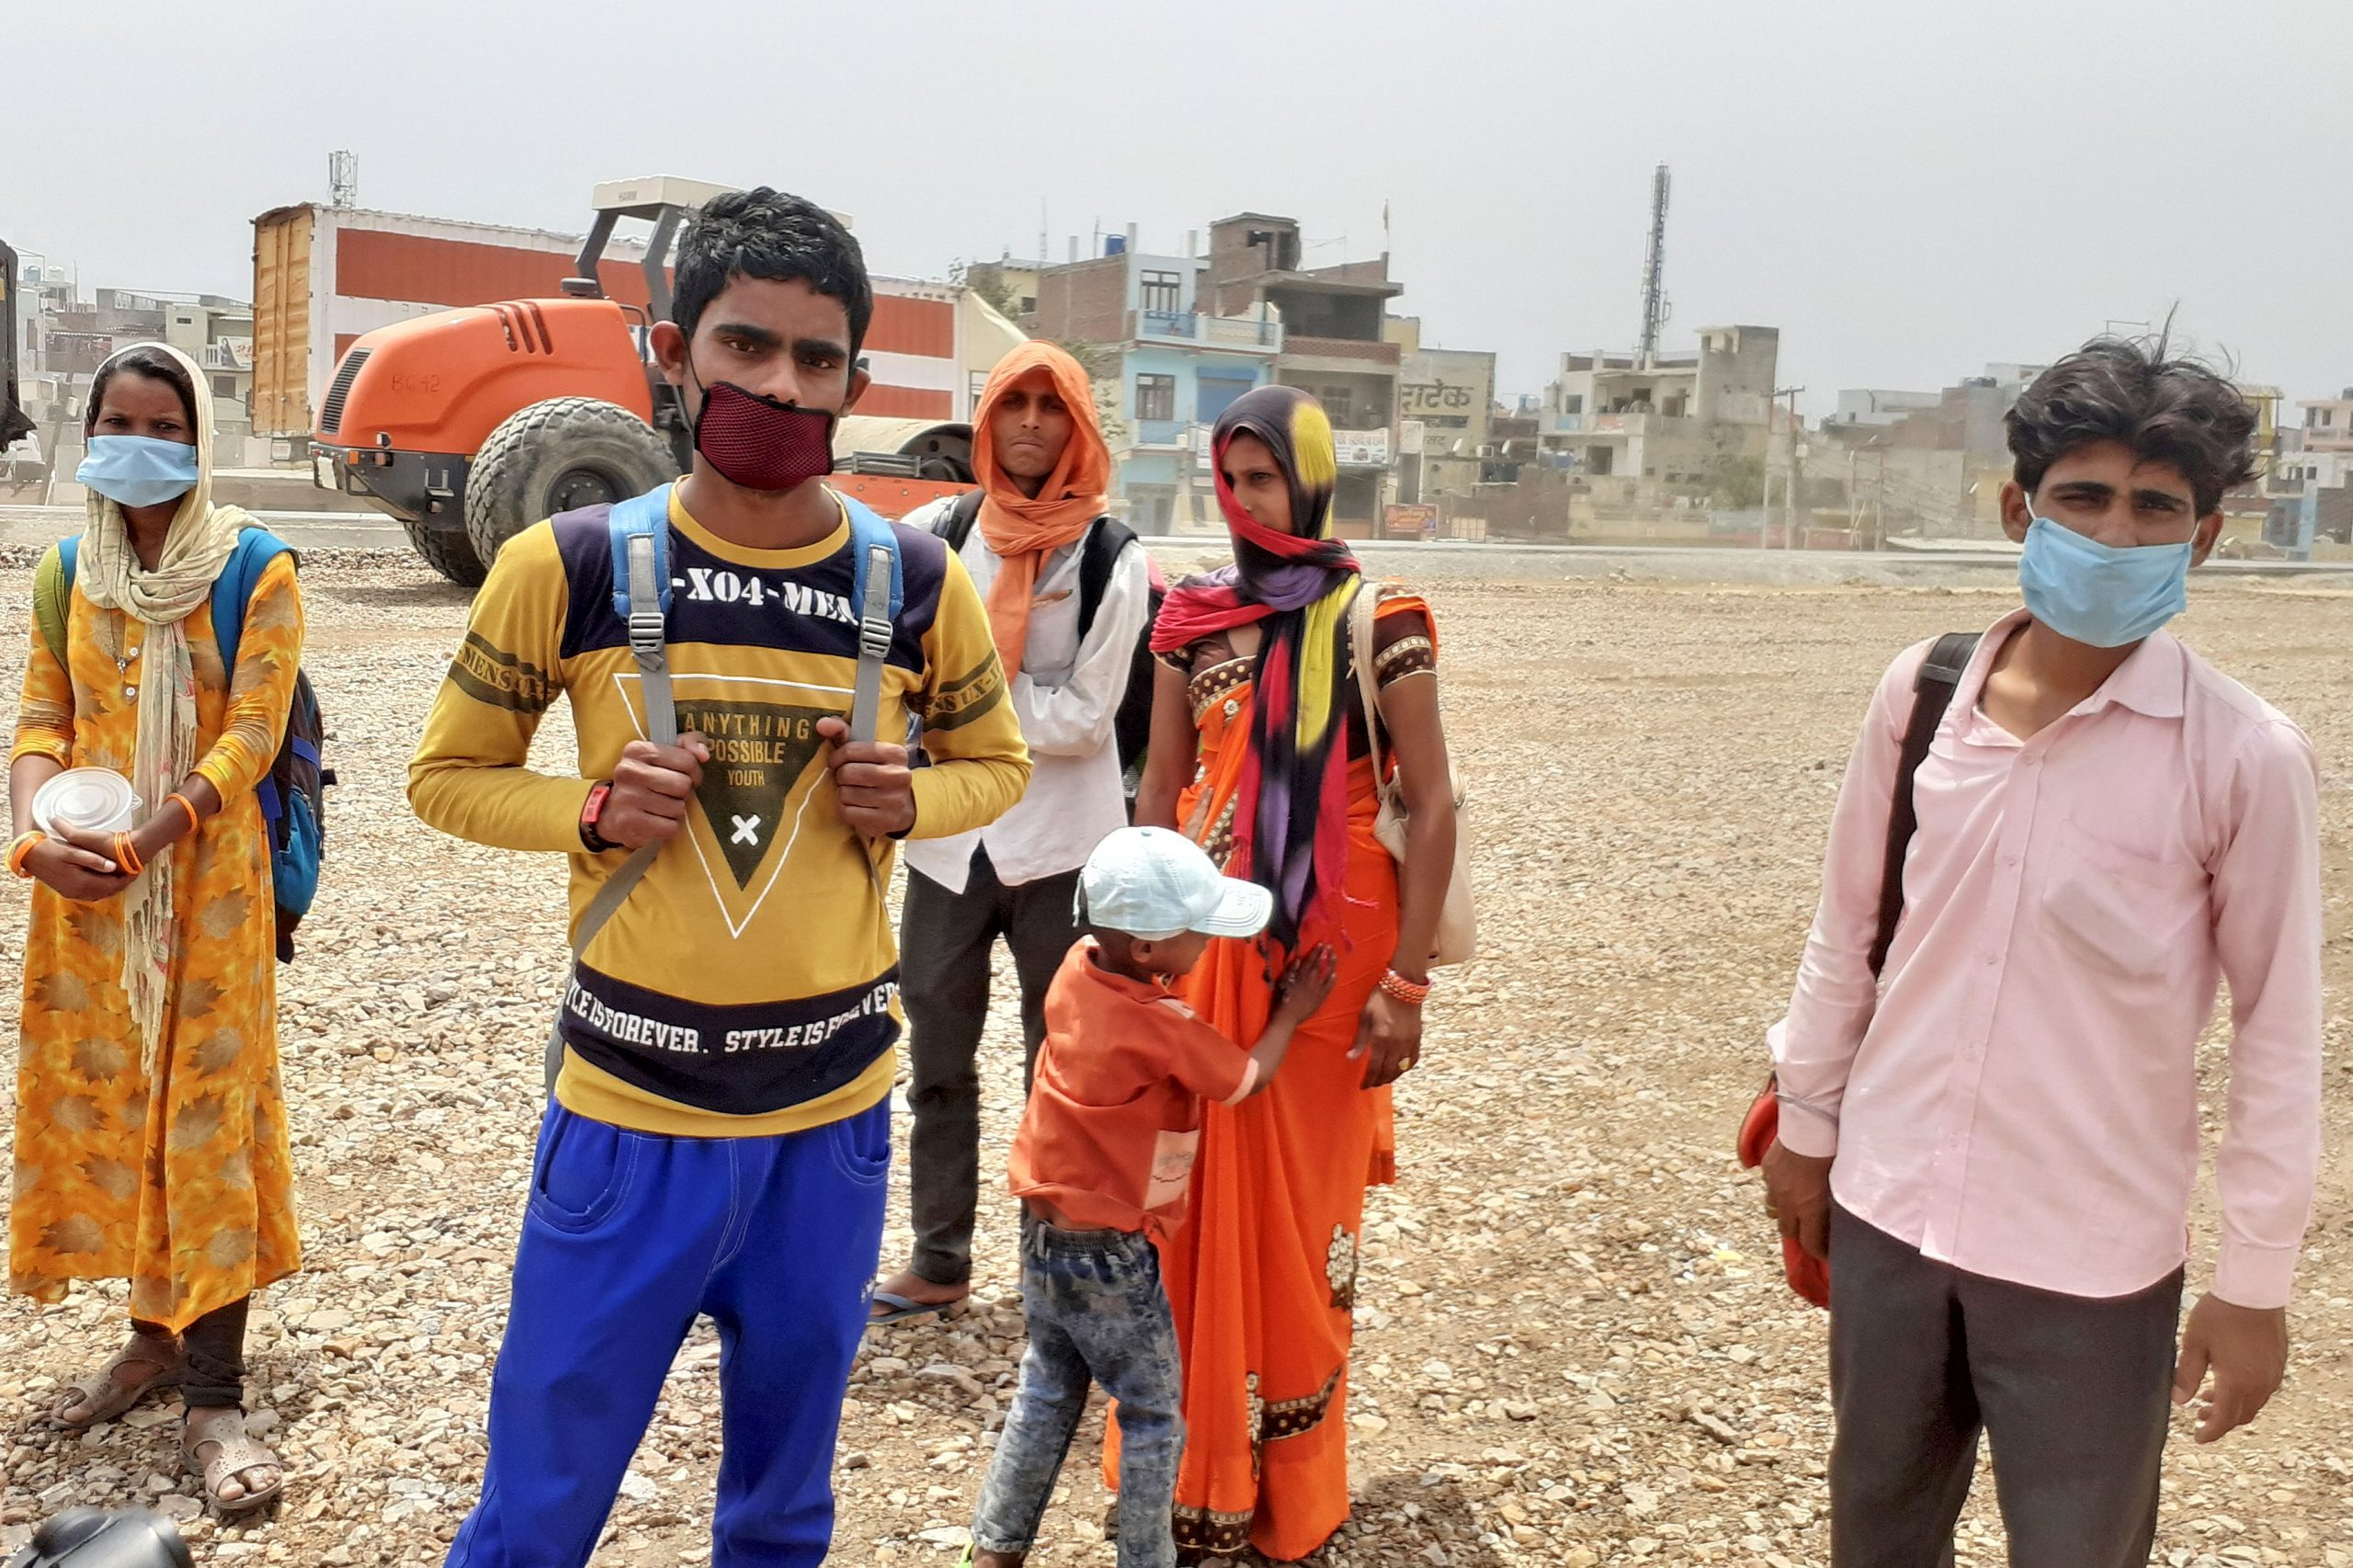 Migrant labourer Manish Verma (2nd L) stands along with his family and neighbours on the national highway during a government-imposed nationwide lockdown as a preventive measure against the COVID-19 coronavirus, in Ghaziabad. - Indian Prime Minister Narendra Modi's grand announcement of a $265-billion rescue package for the Indian economy is little comfort to Manish Verma, one of millions left destitute and desperate 50 days into a crippling coronavirus lockdown. (Photo by Abhaya SRIVASTAVA / AFP)